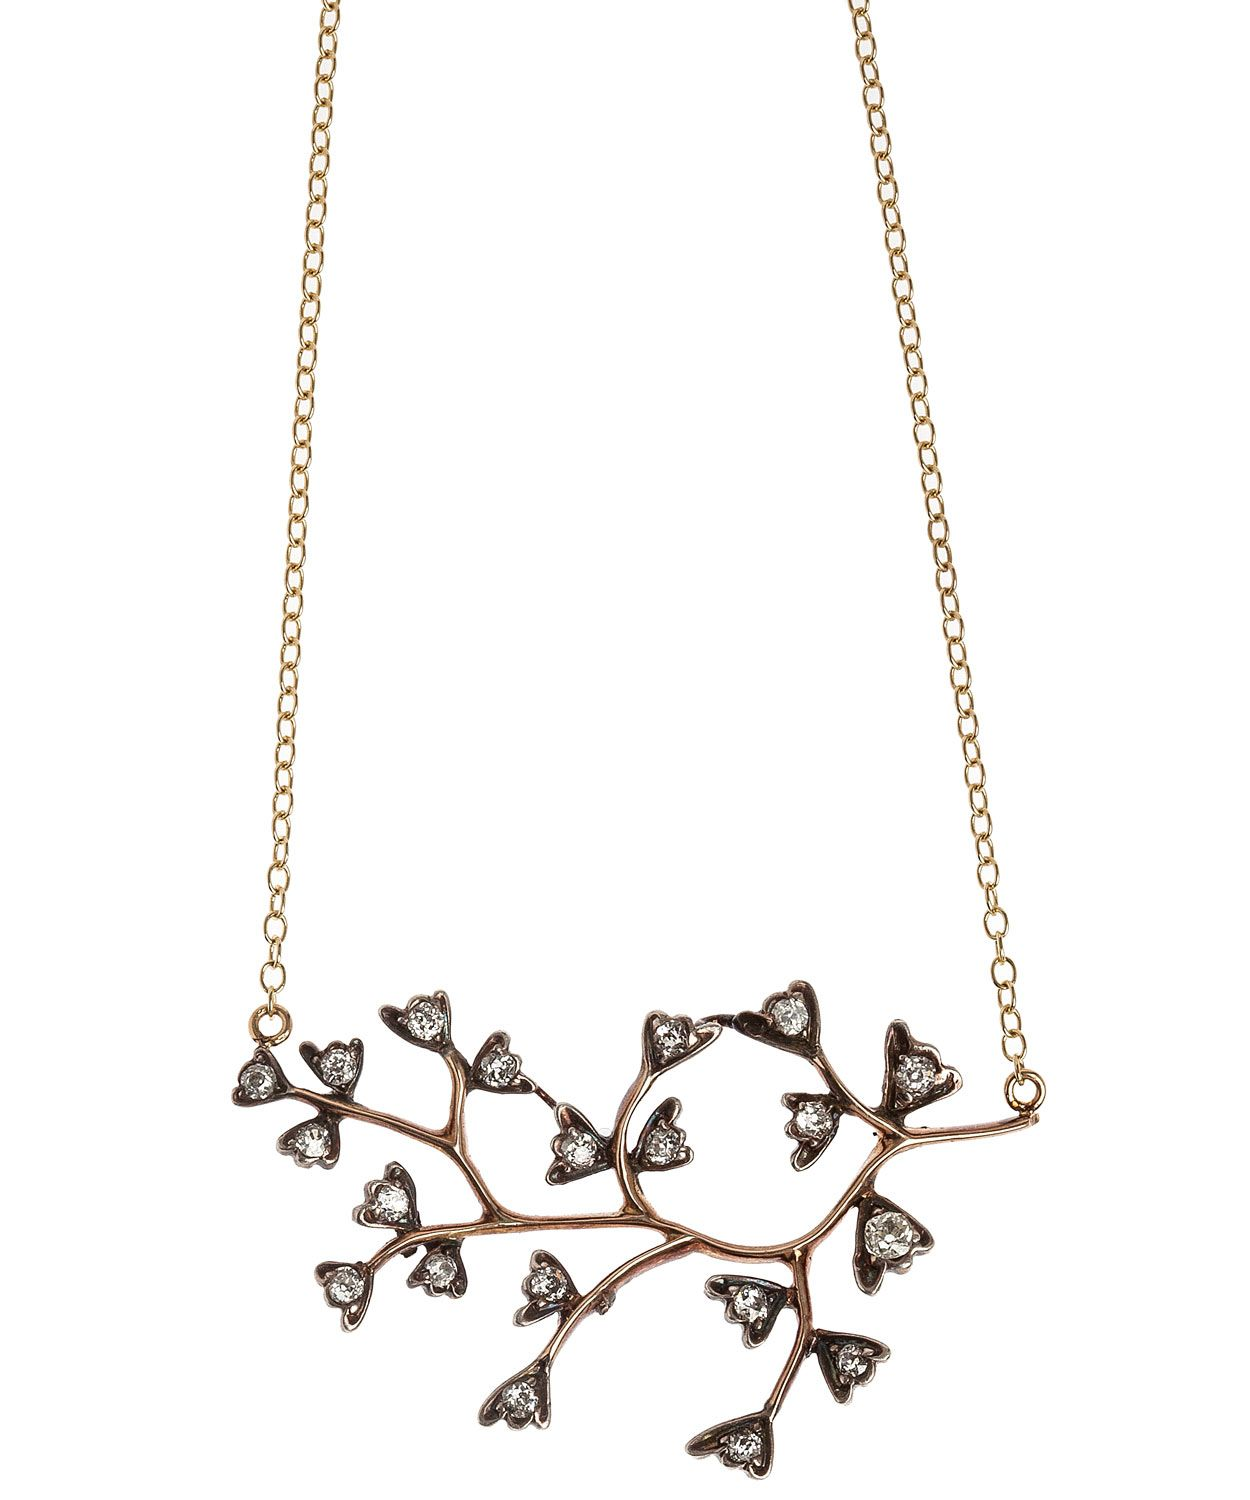 Diamond Branch Necklace | Annina Vogel, Liberty.co.uk